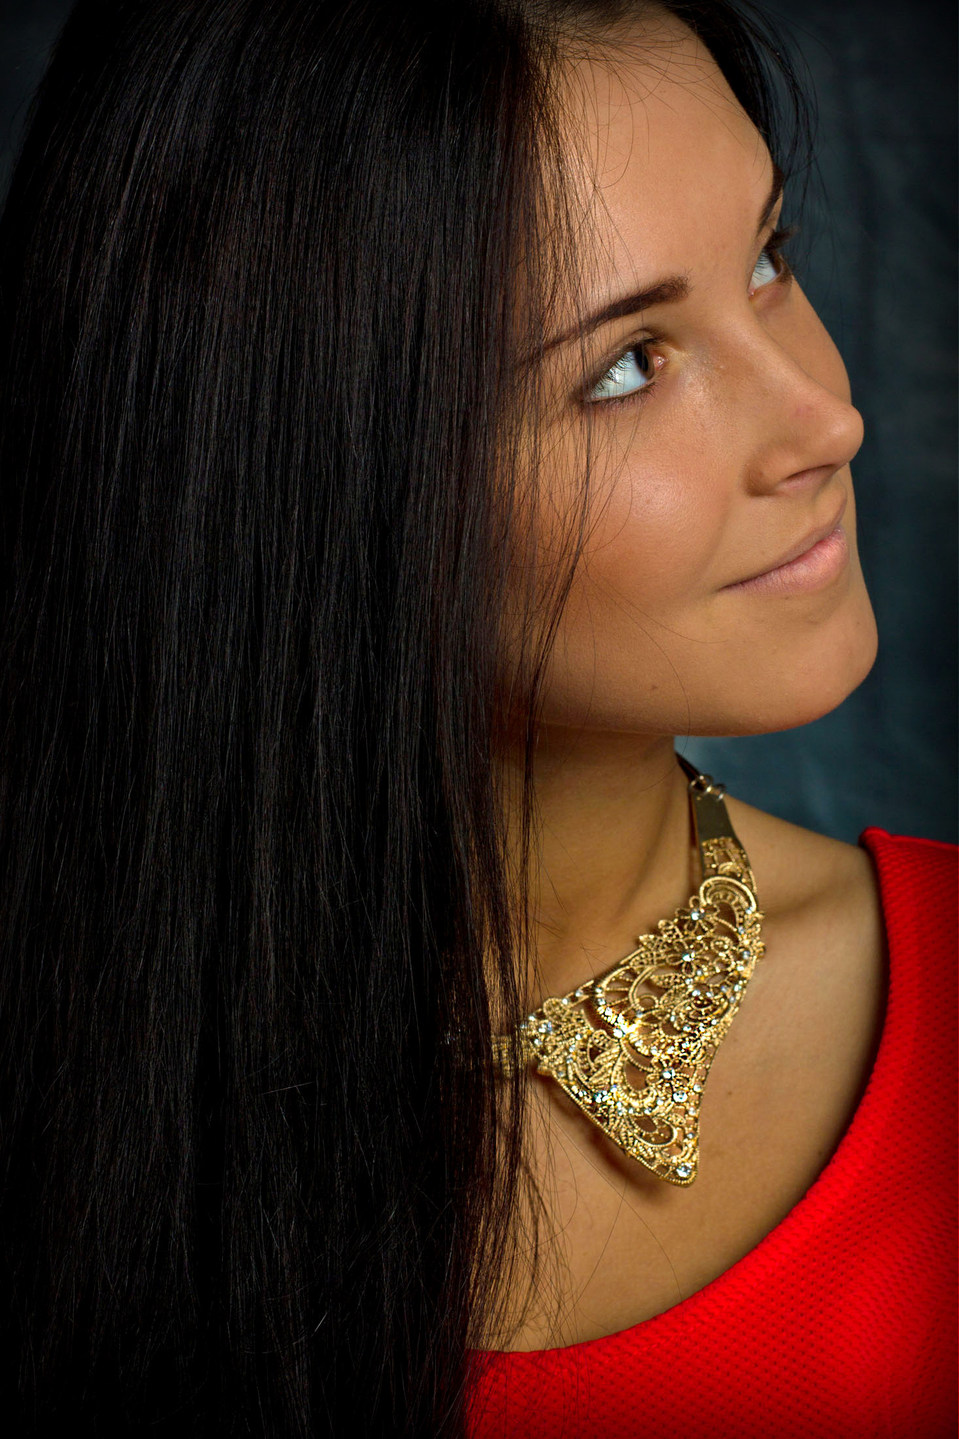 Girl wearing golden necklace | golden necklace, blue eyes, smile, red dress